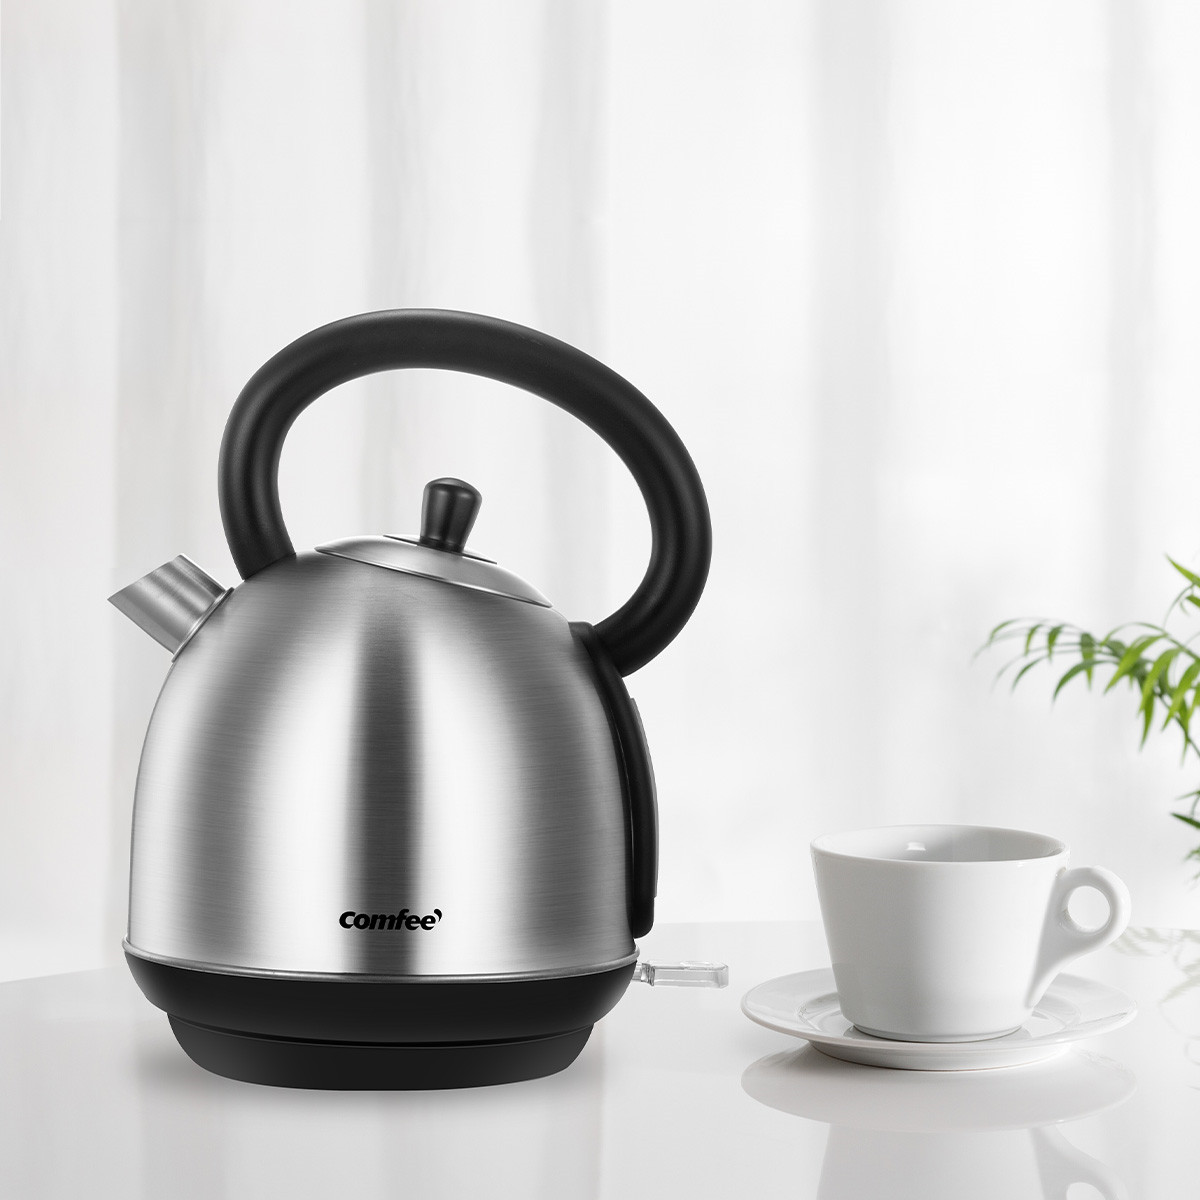 [US Direct] Original COMFEE' 1.8L Stainless Steel Inner Pot and Lid Electric Kettle with Removable Water Filter and Large Spout. Auto Shut-off & Boil-dry Protection, 1500W Silver/Black_1.8 L